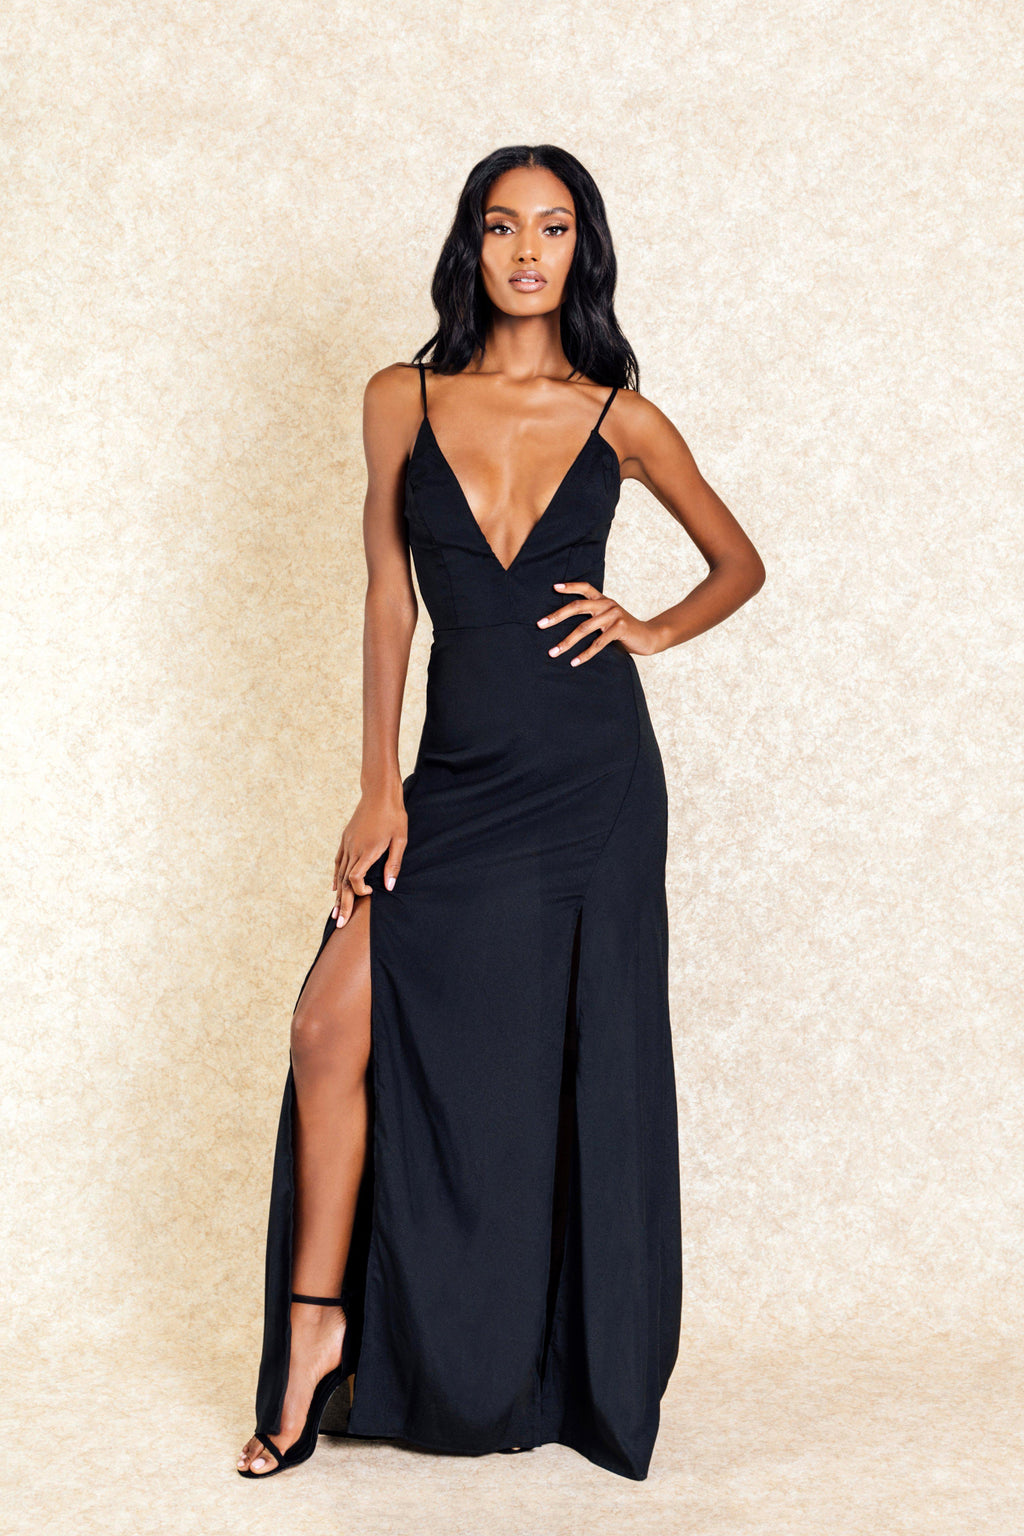 Tanisha Black Maxi Double Slit Dress